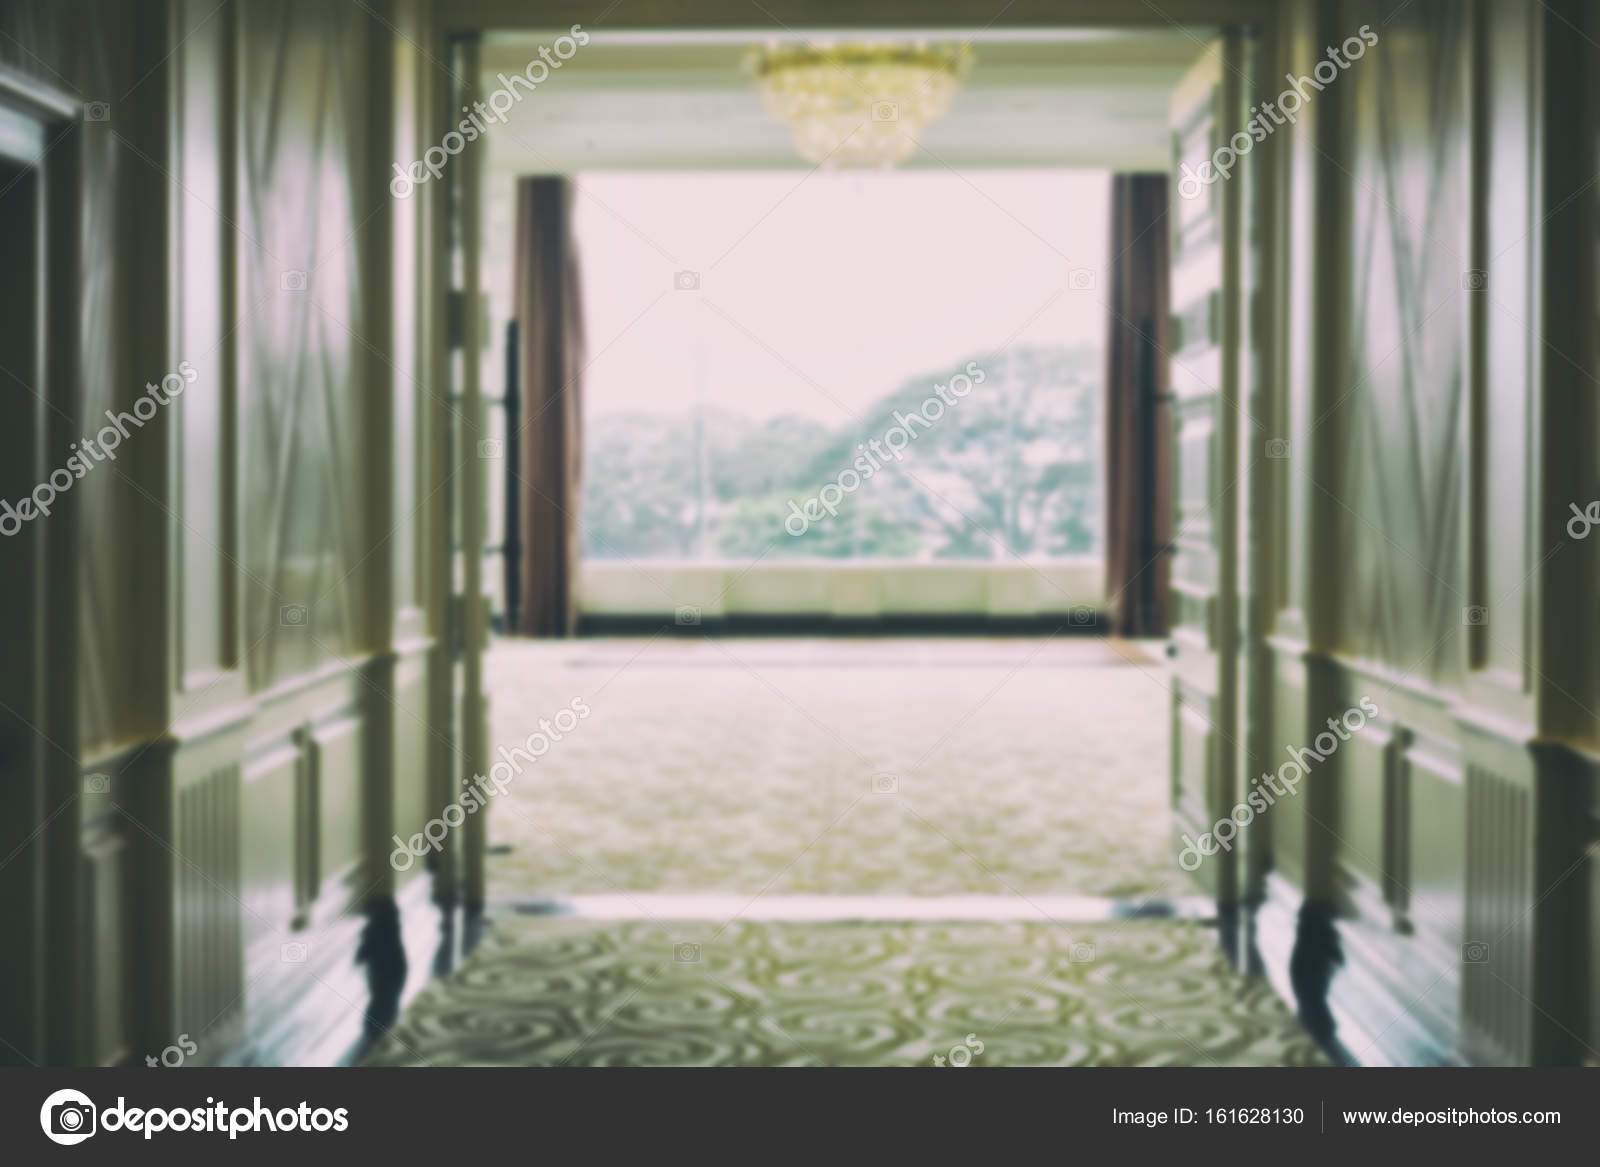 Hotel Interior Banquet Hall Luxury Room For The Wedding Party Stock Photo C Psisaa 161628130